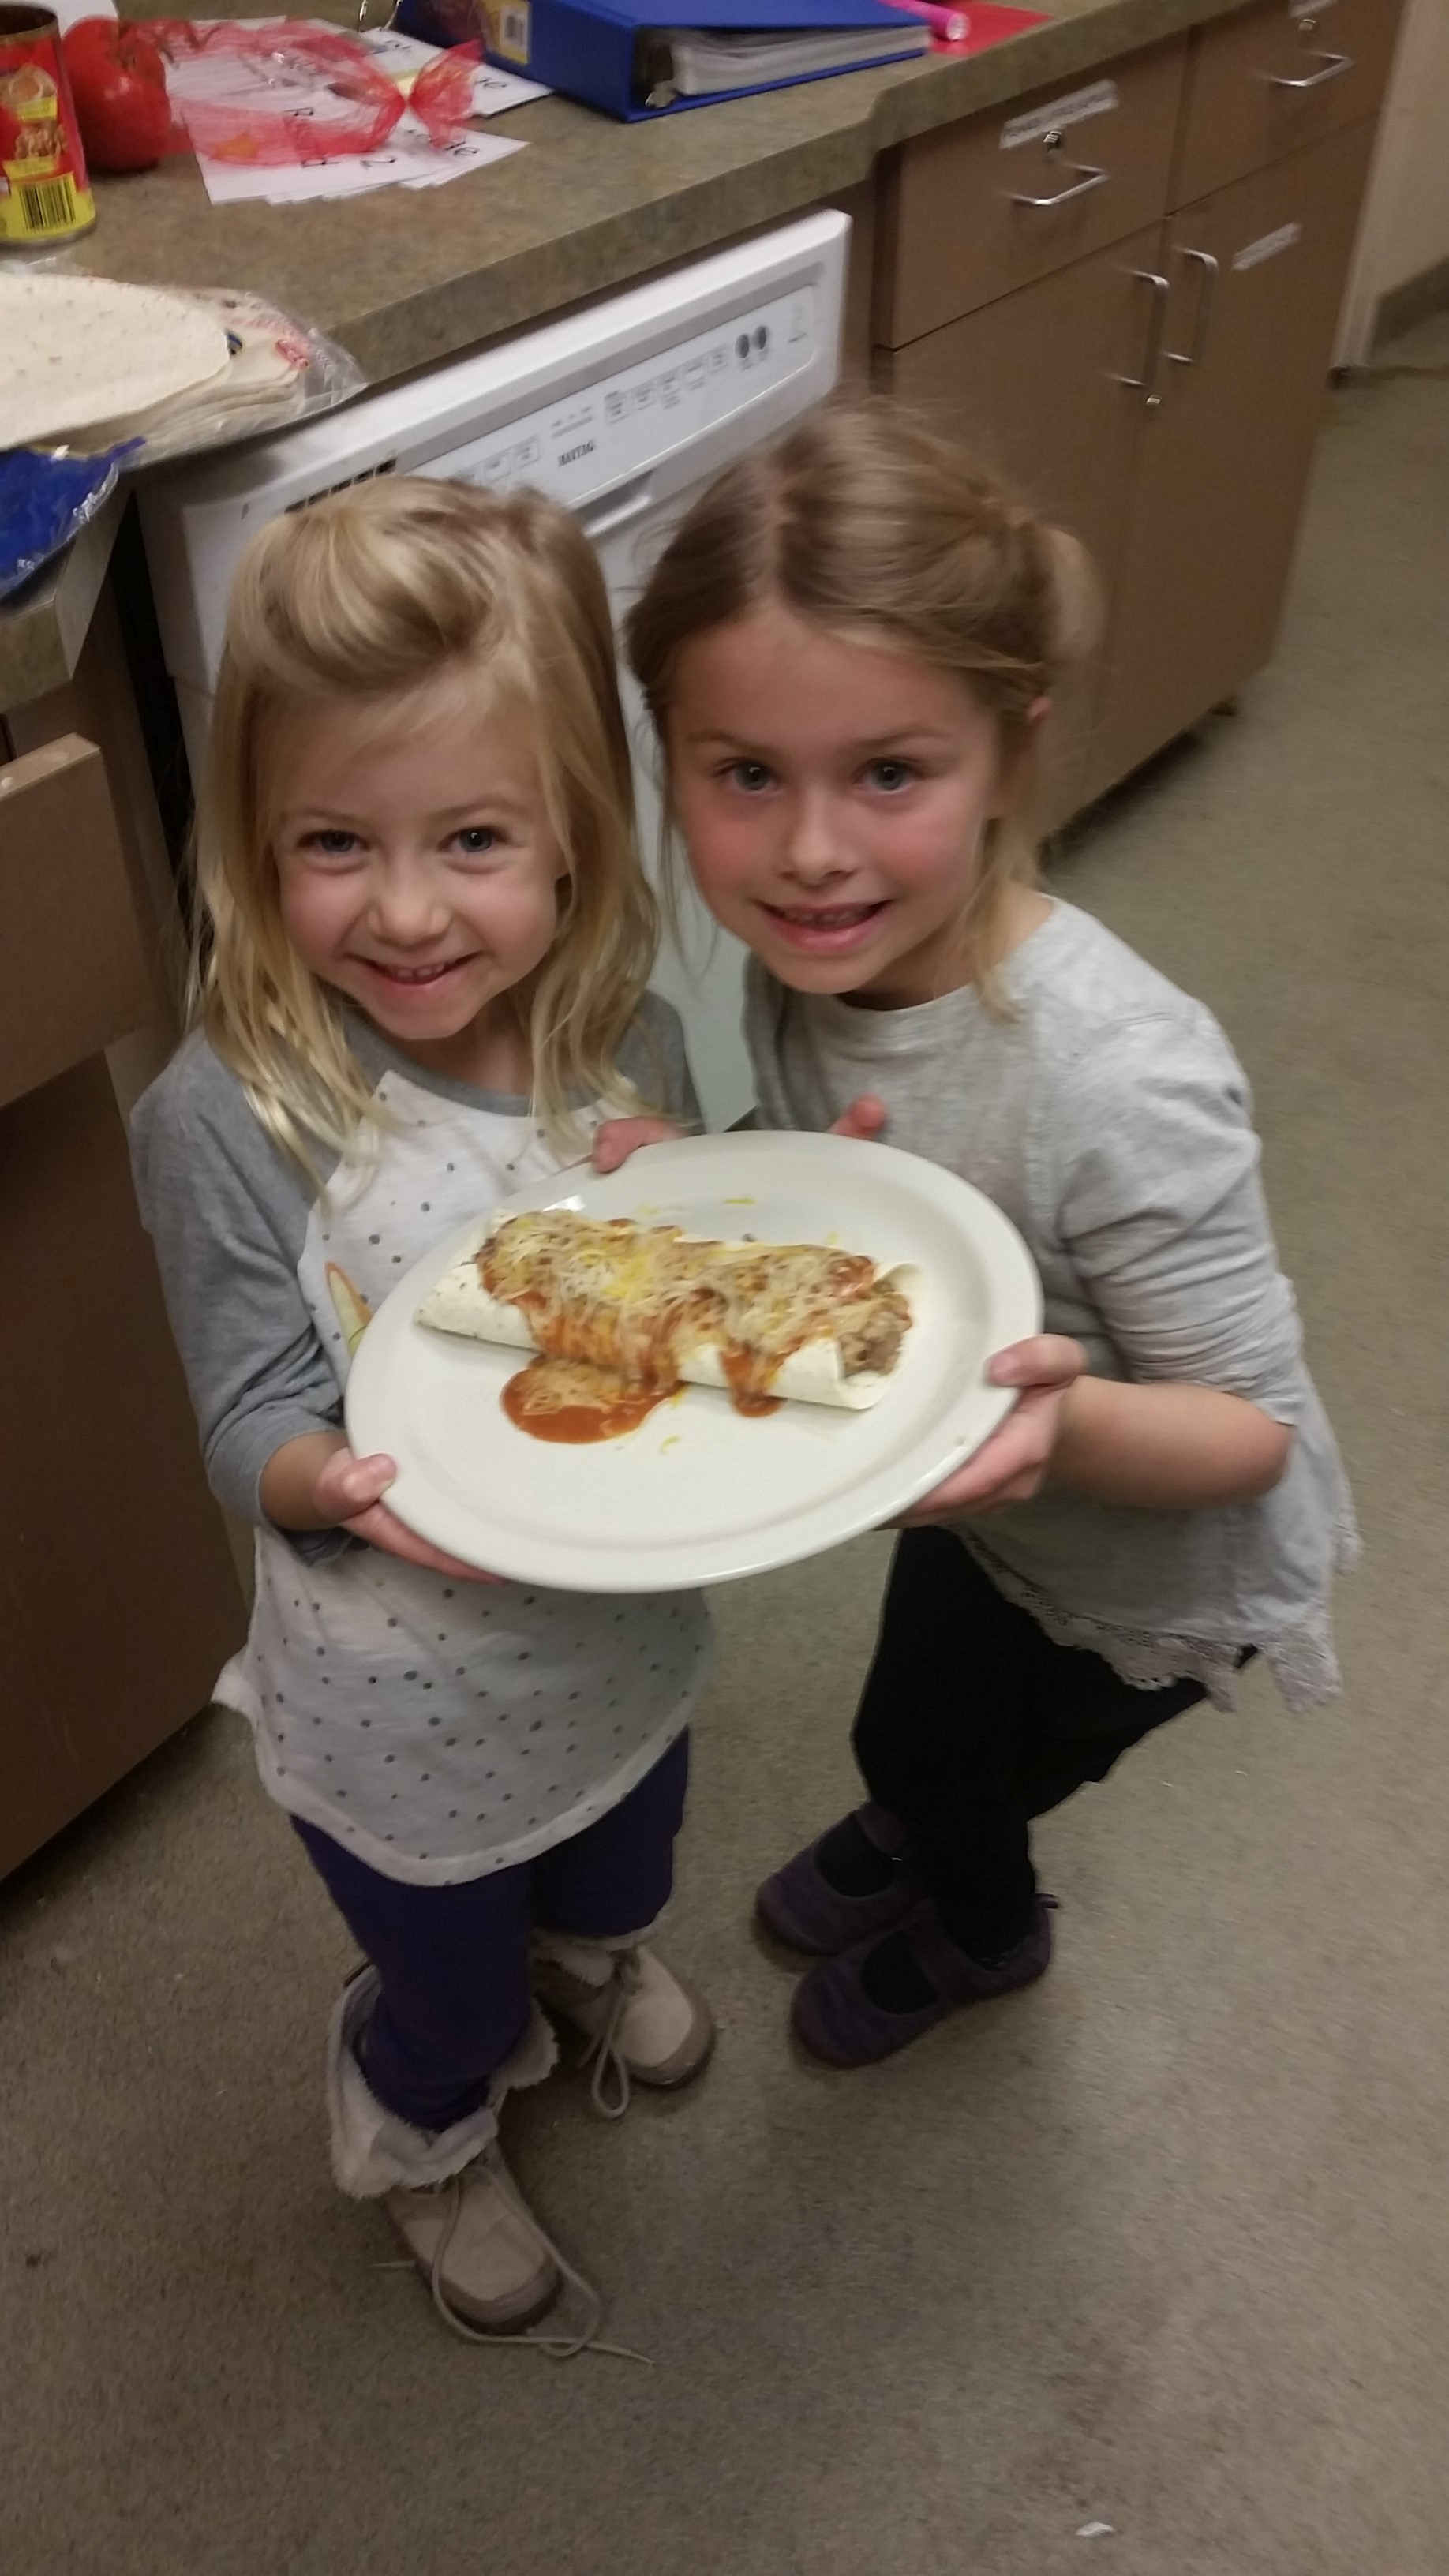 Two girls in cooking class holding plate of food